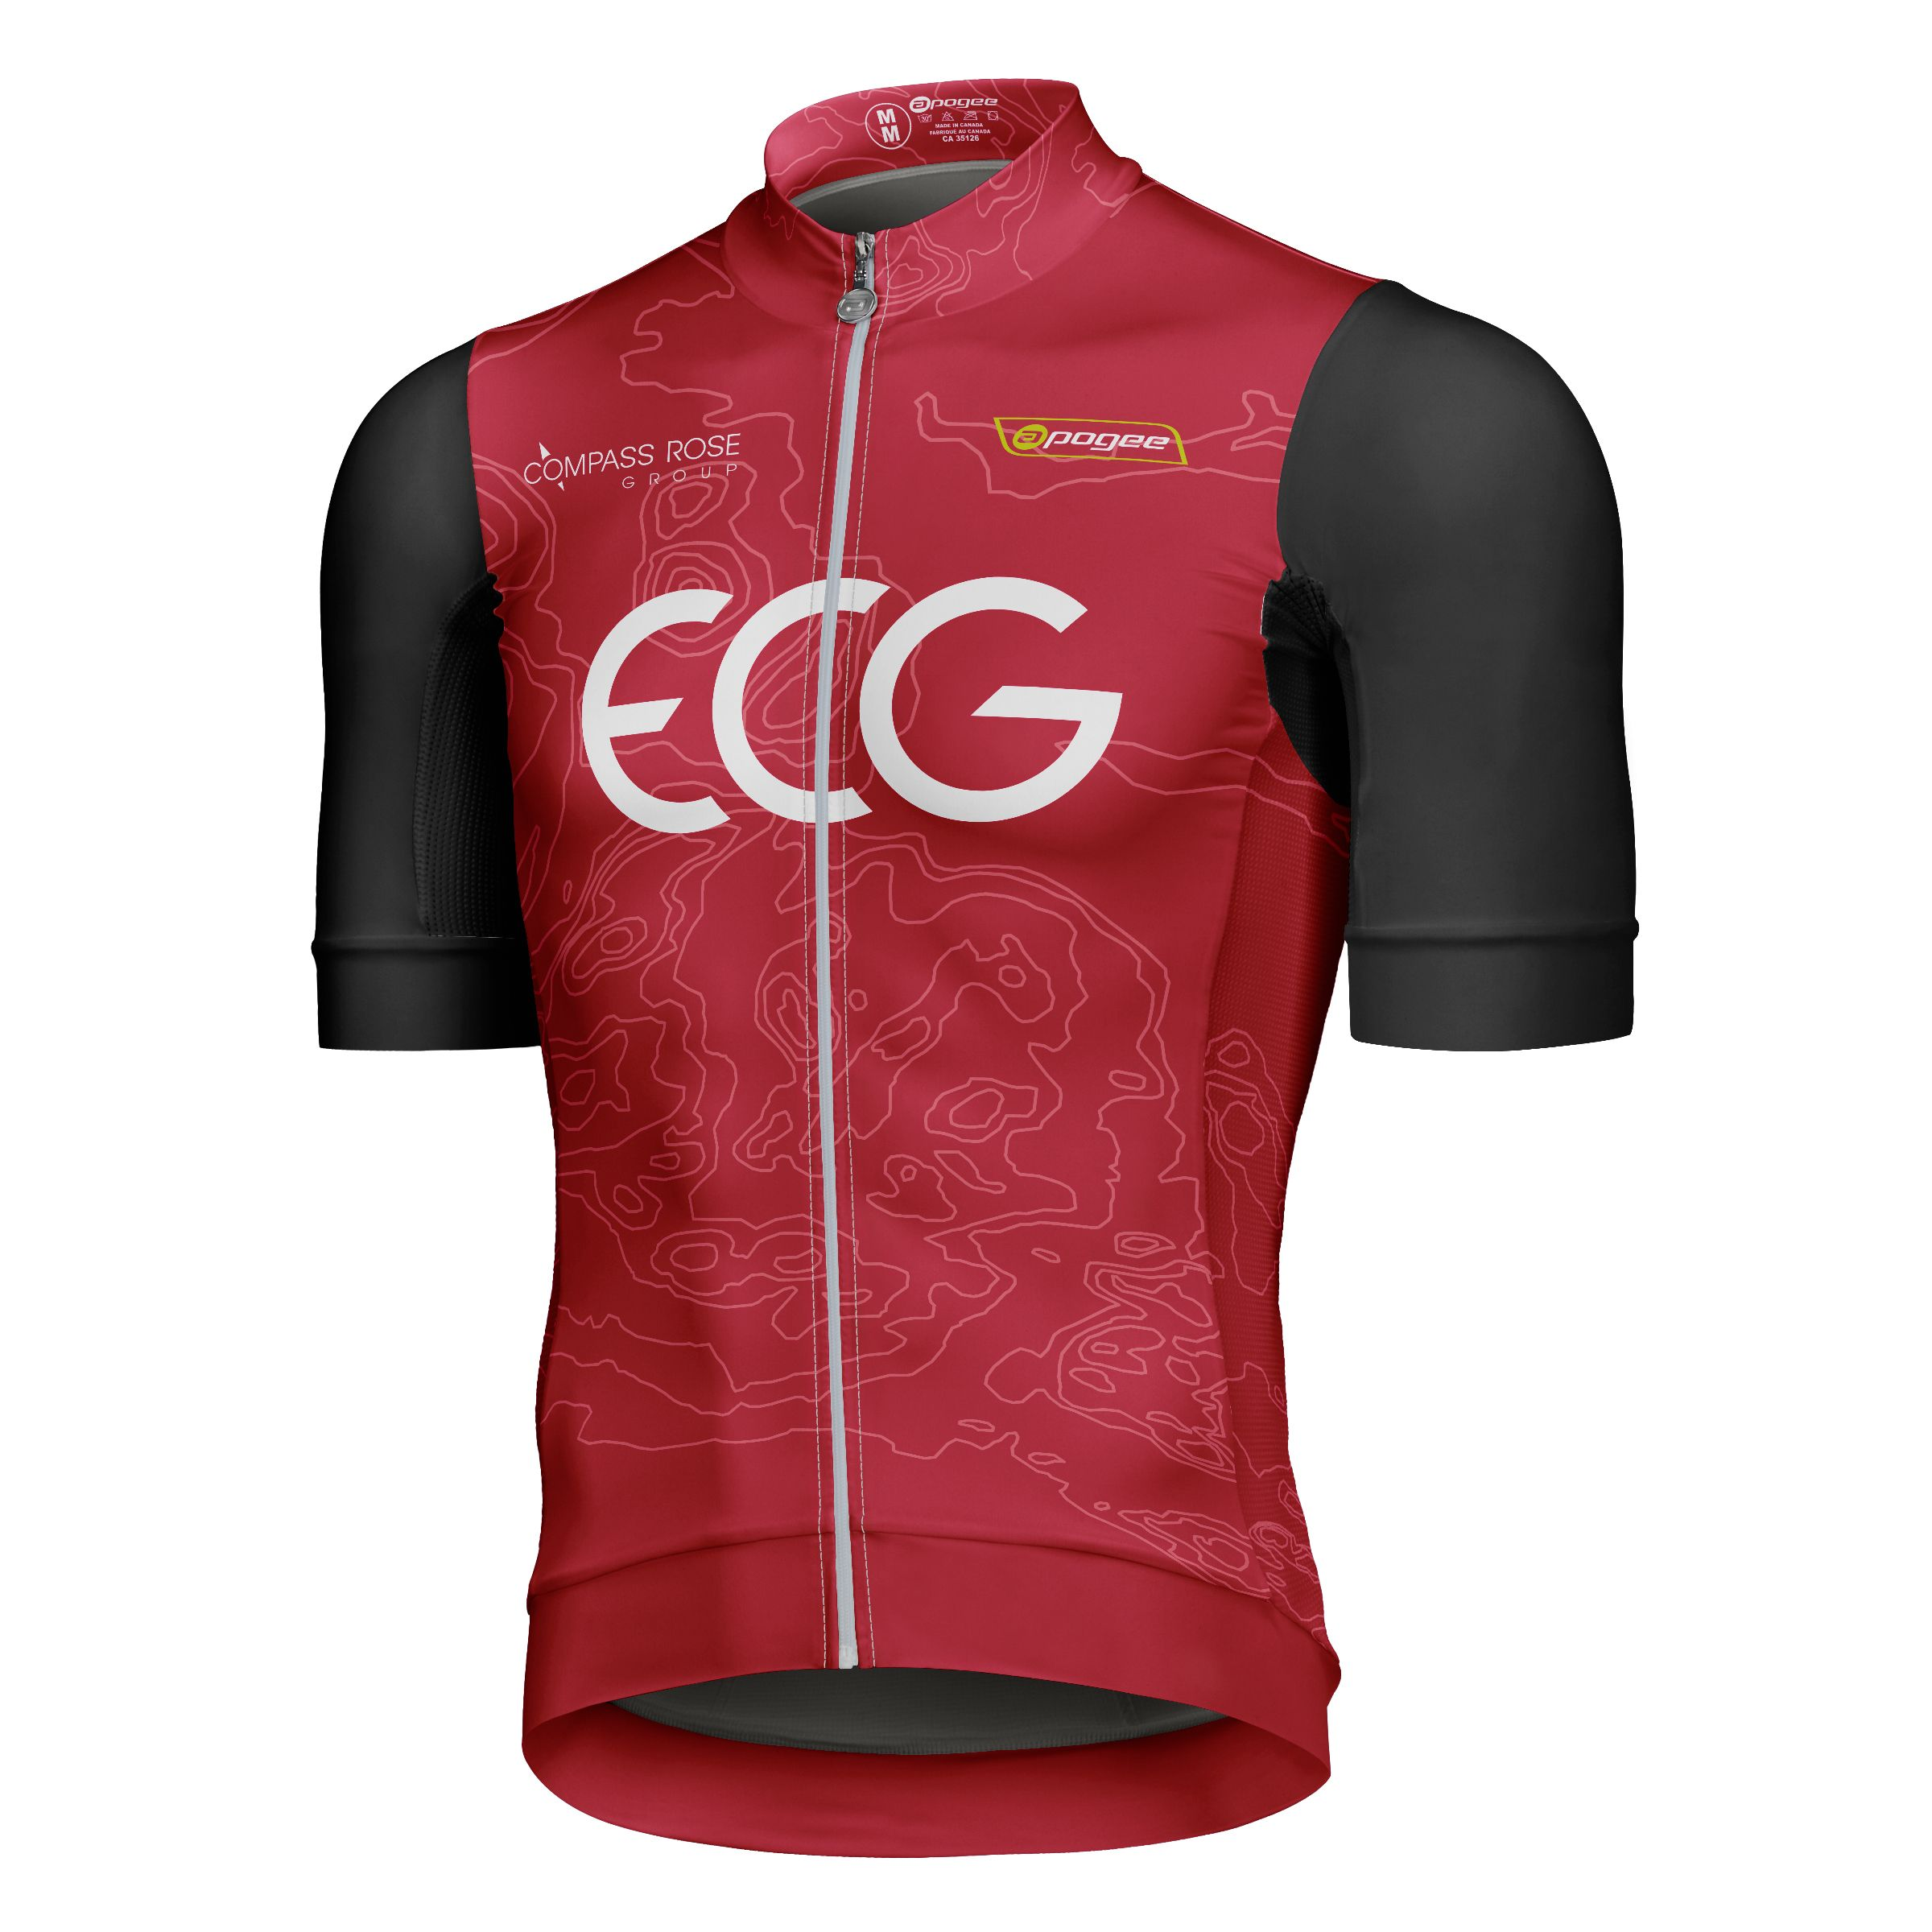 Cycling jersey - Designed and made by Apogee Sports. Visit www.apogee-sports 69044be69